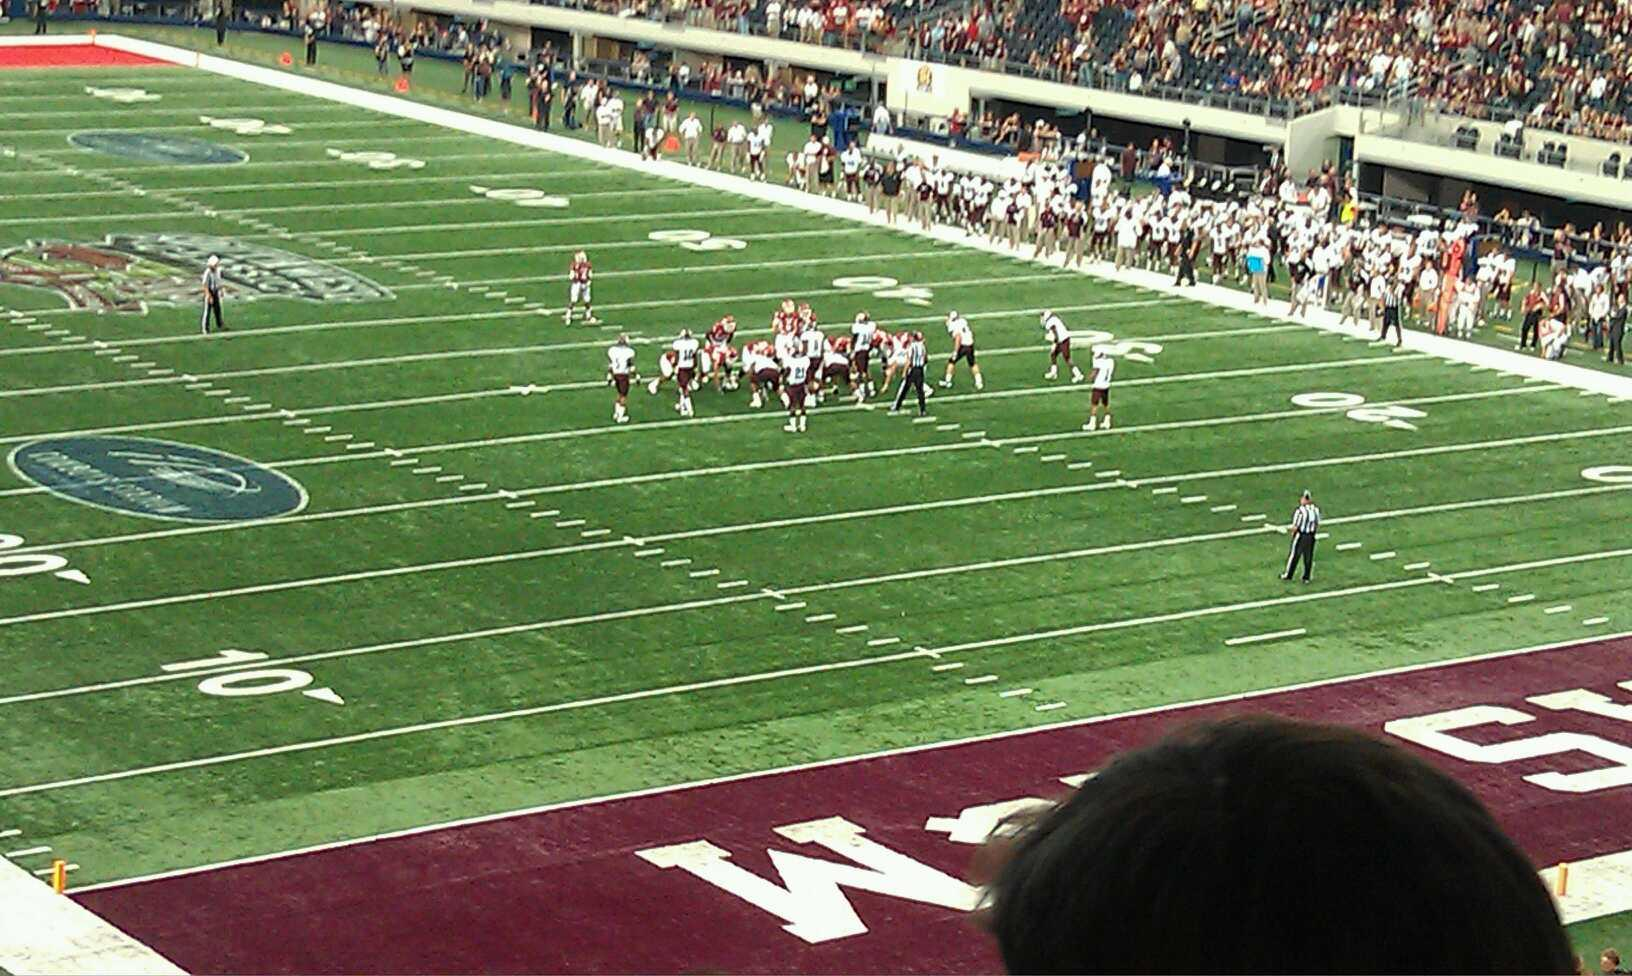 AT&T Stadium Section 227 Row 15 Seat 1